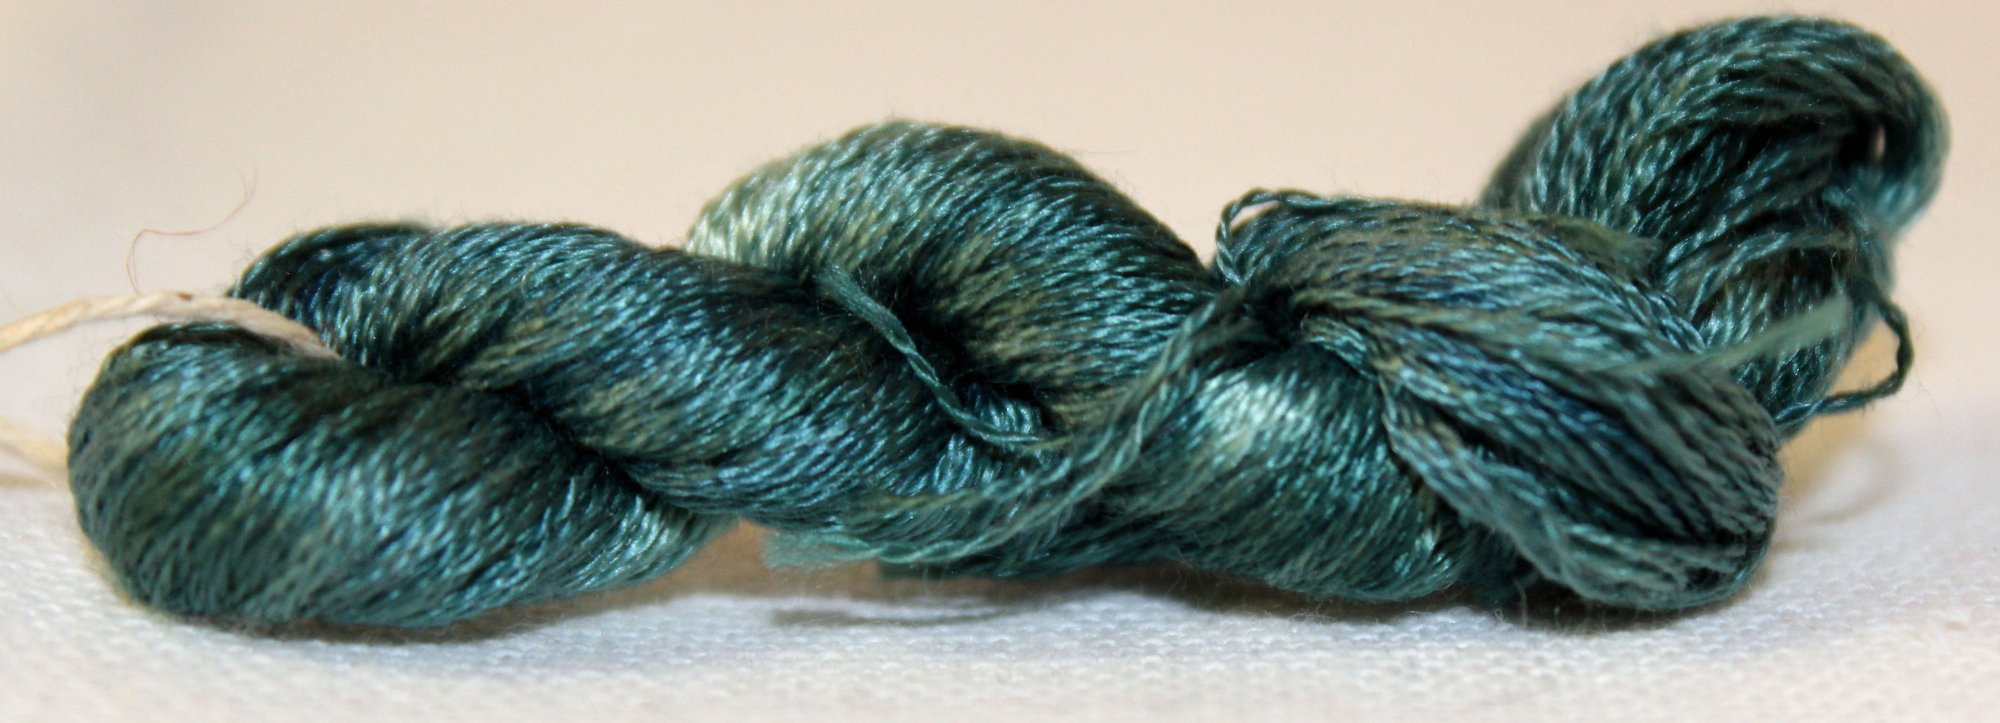 Ivy- Hand-dyed Embroidery Floss